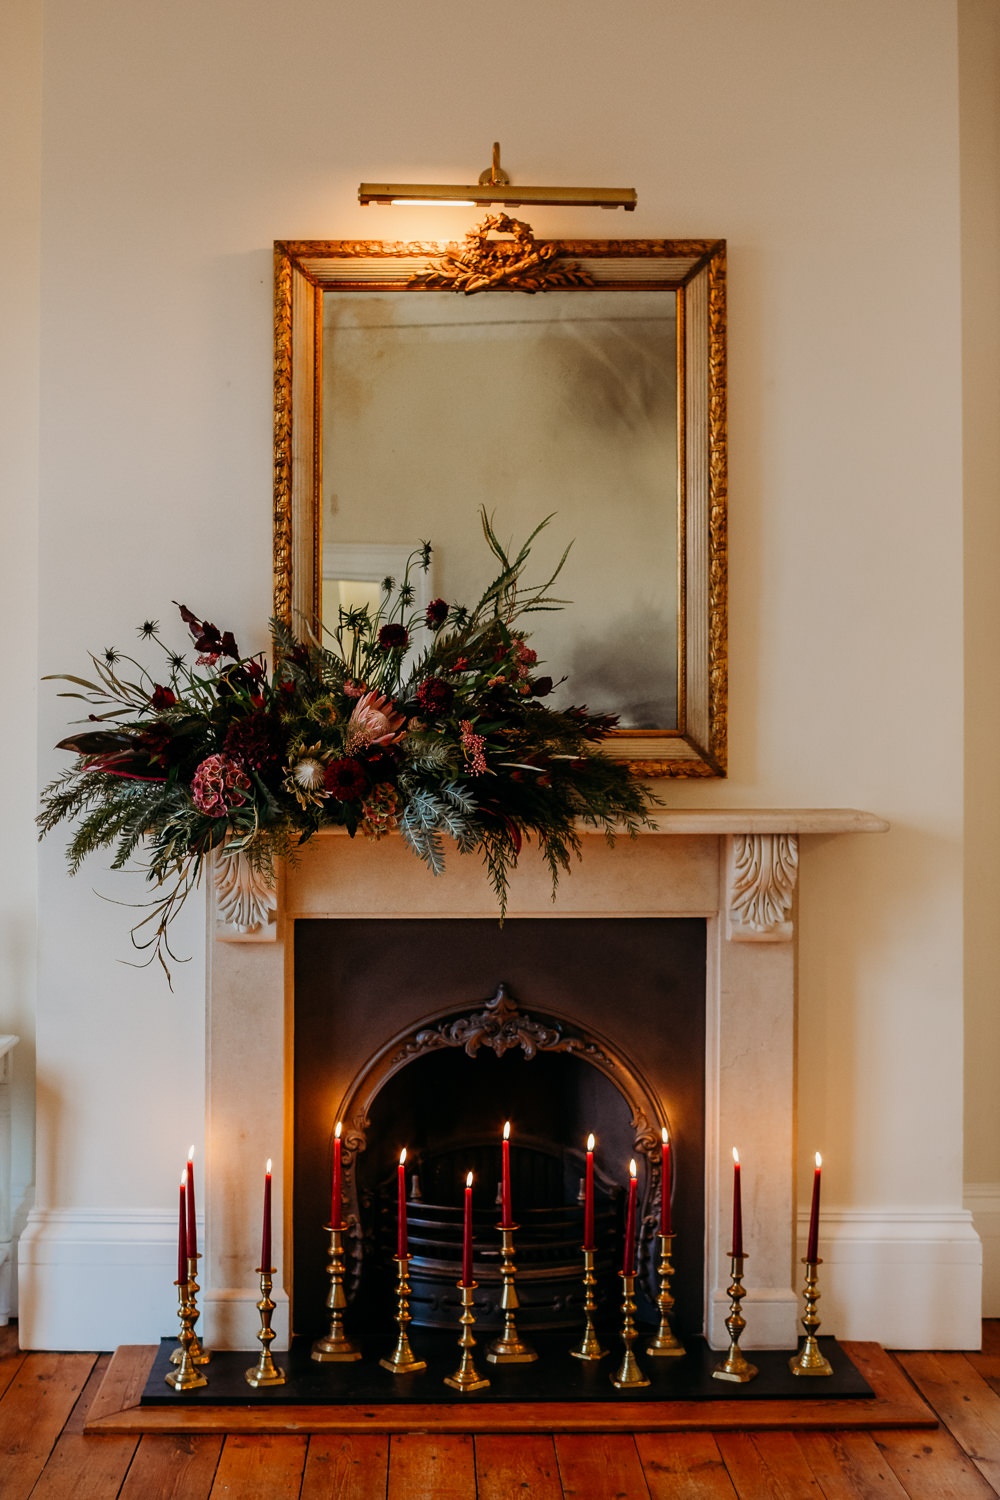 Fireplace Mantlepiece Flowers Candles St. Tewdrics House Wedding When Charlie Met Hannah